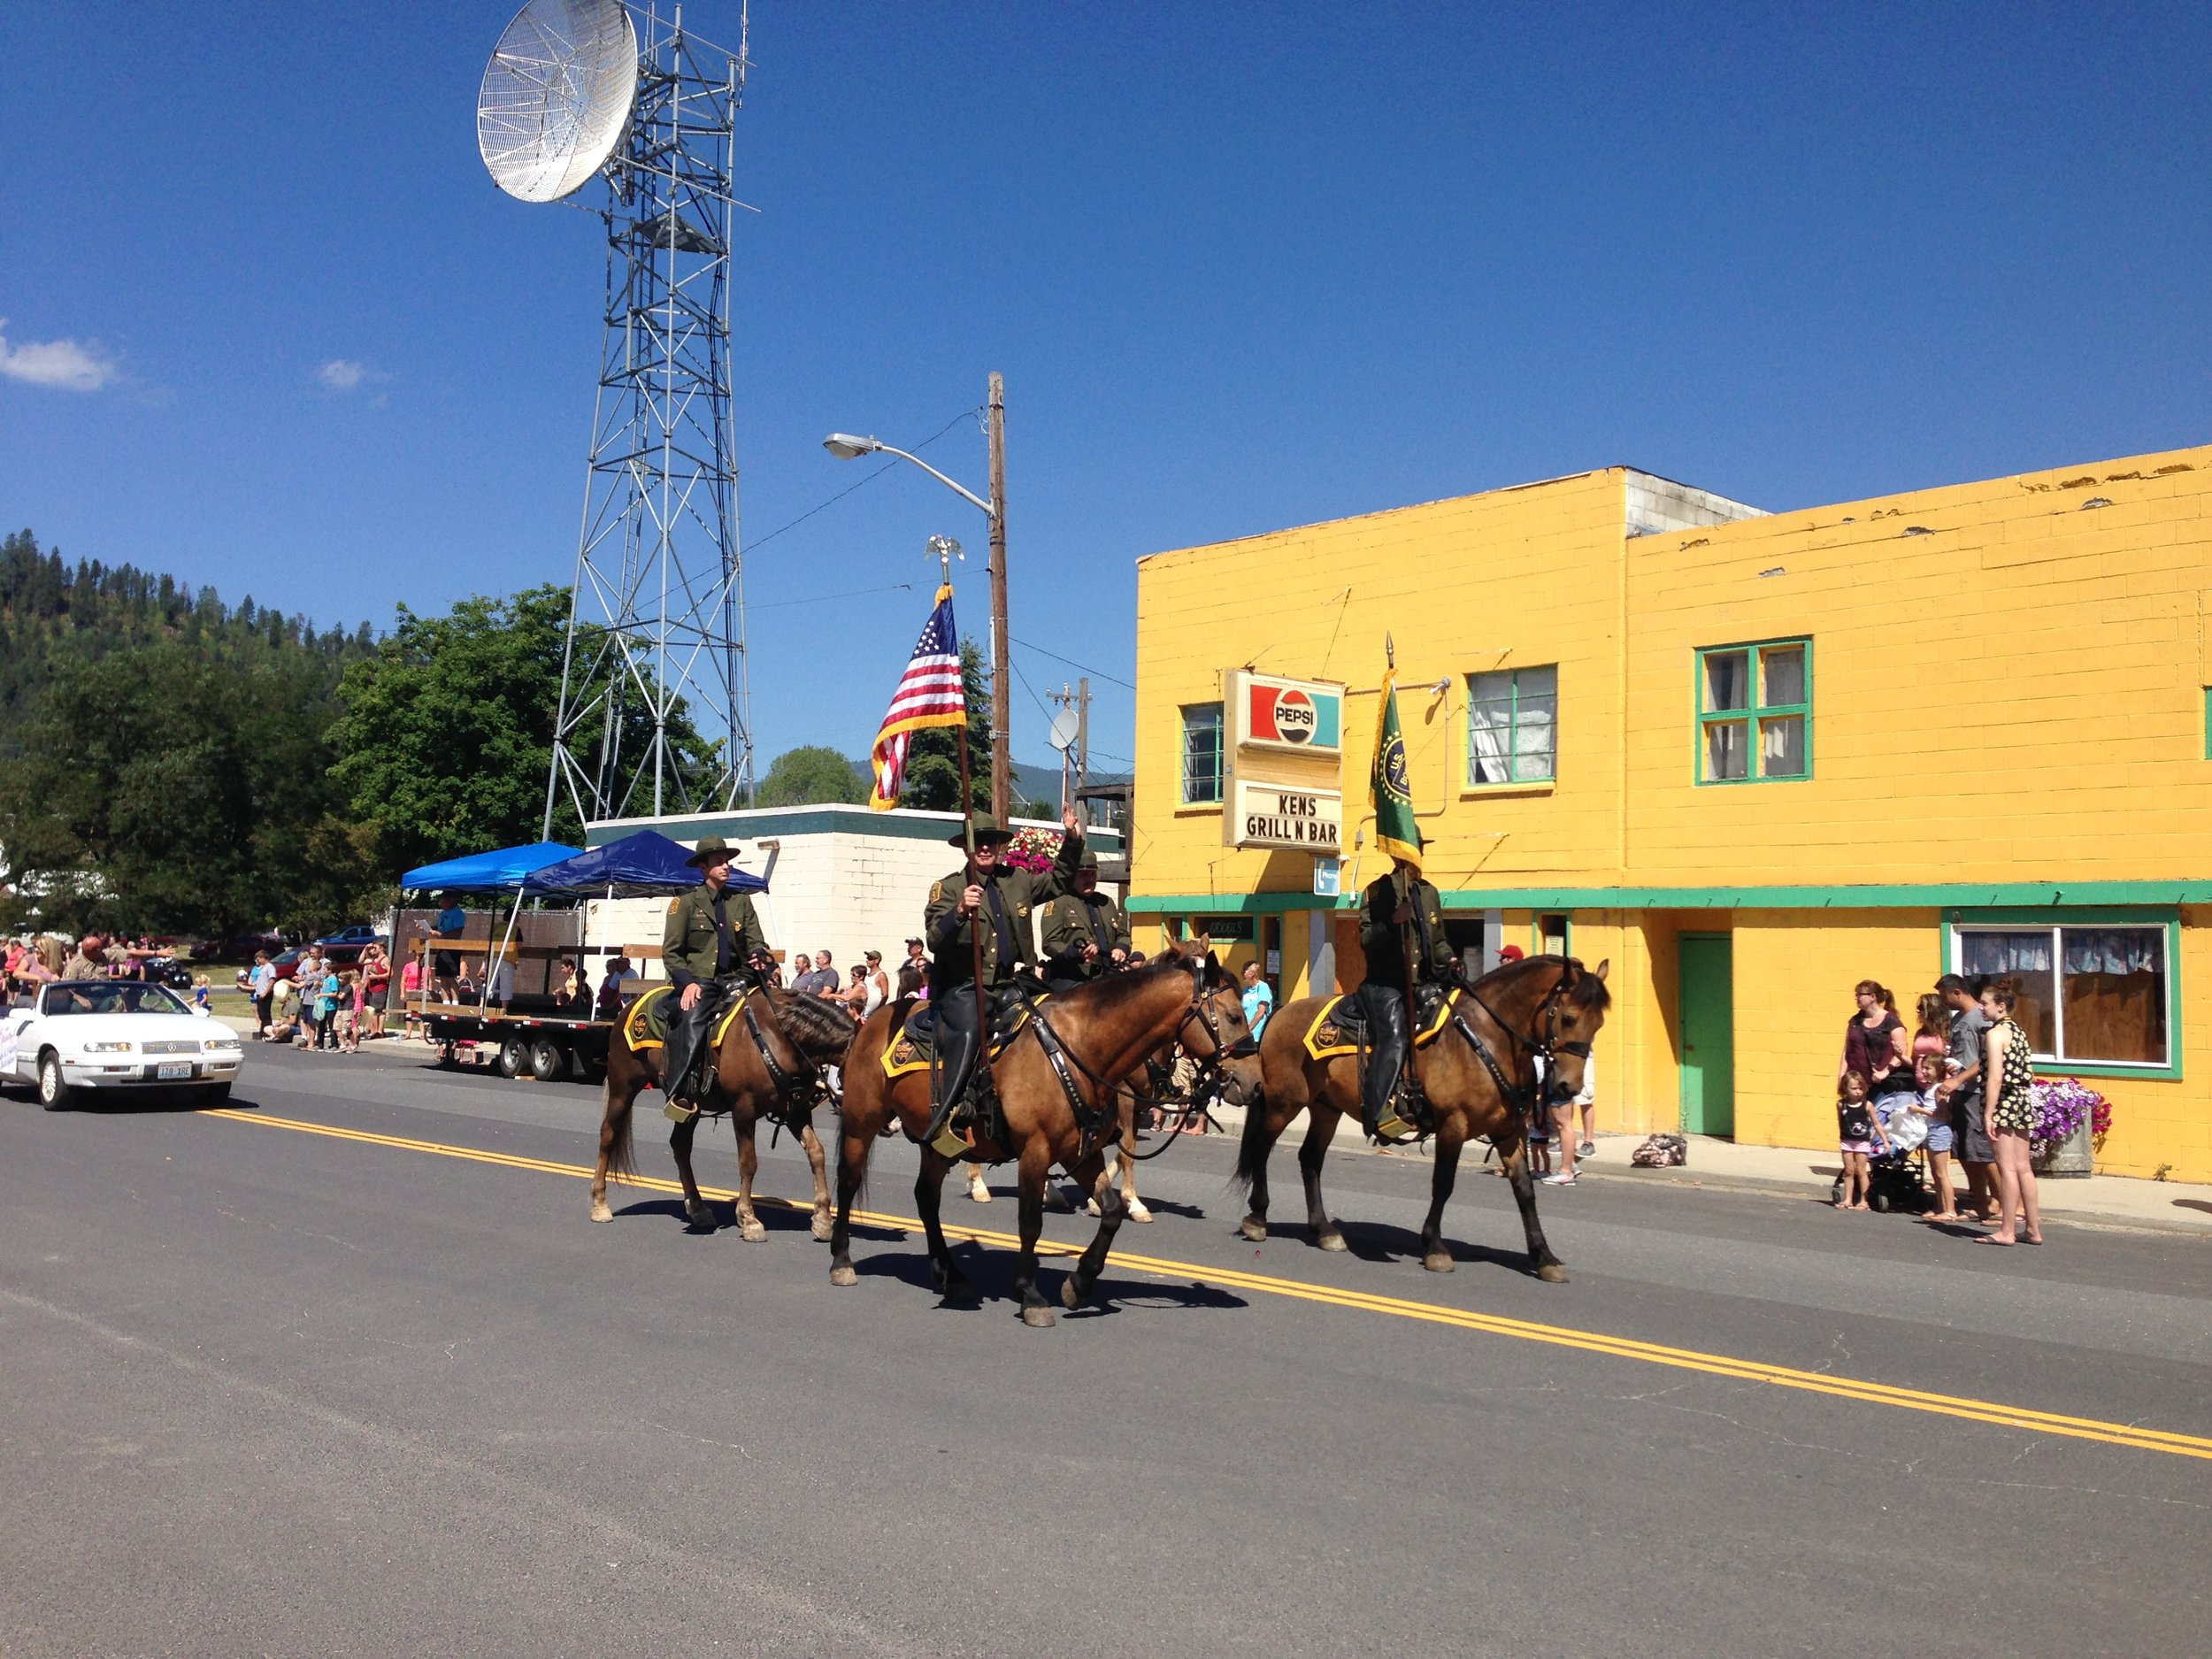 Our friend holding the flag in the parade, representing the border patrol.